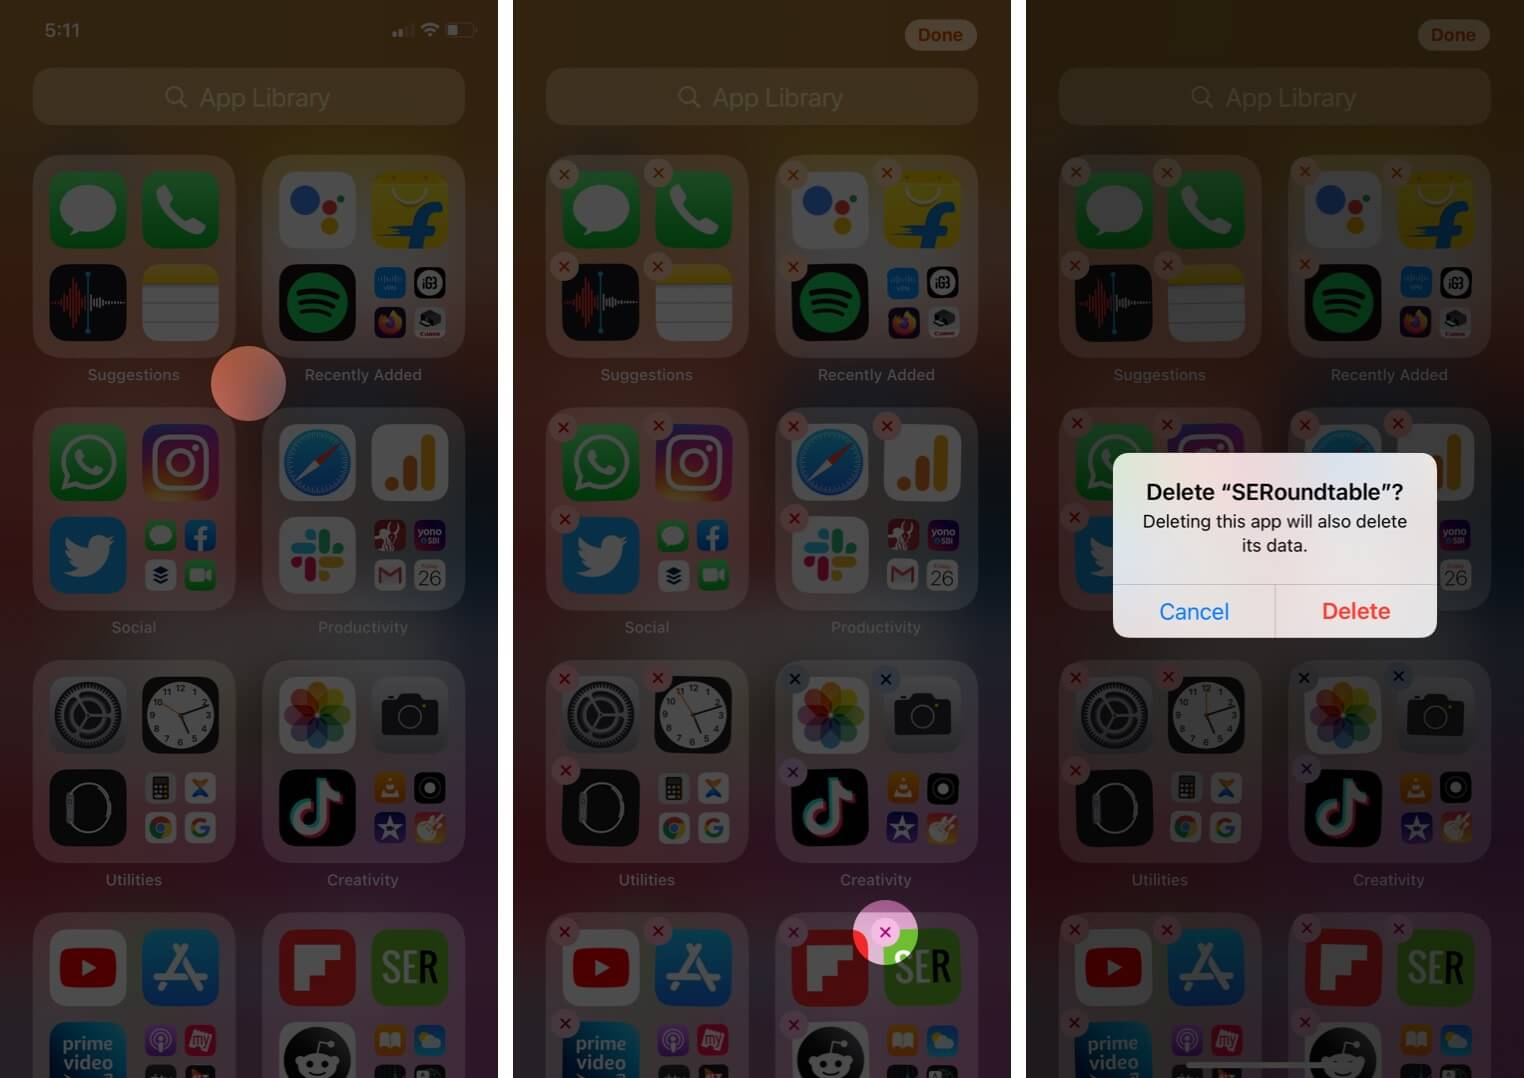 delete apps from app library in ios 14 on iphone